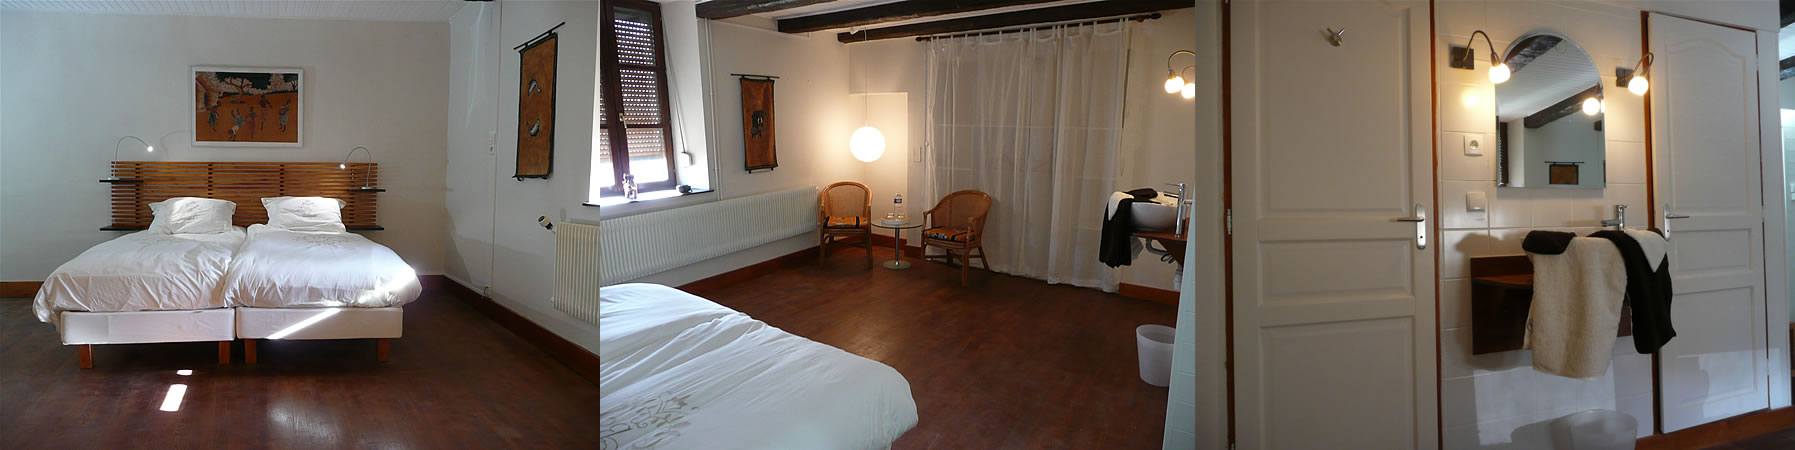 Booking Chambre D Hote Le Mouton Qui Rit Bed Breakfast